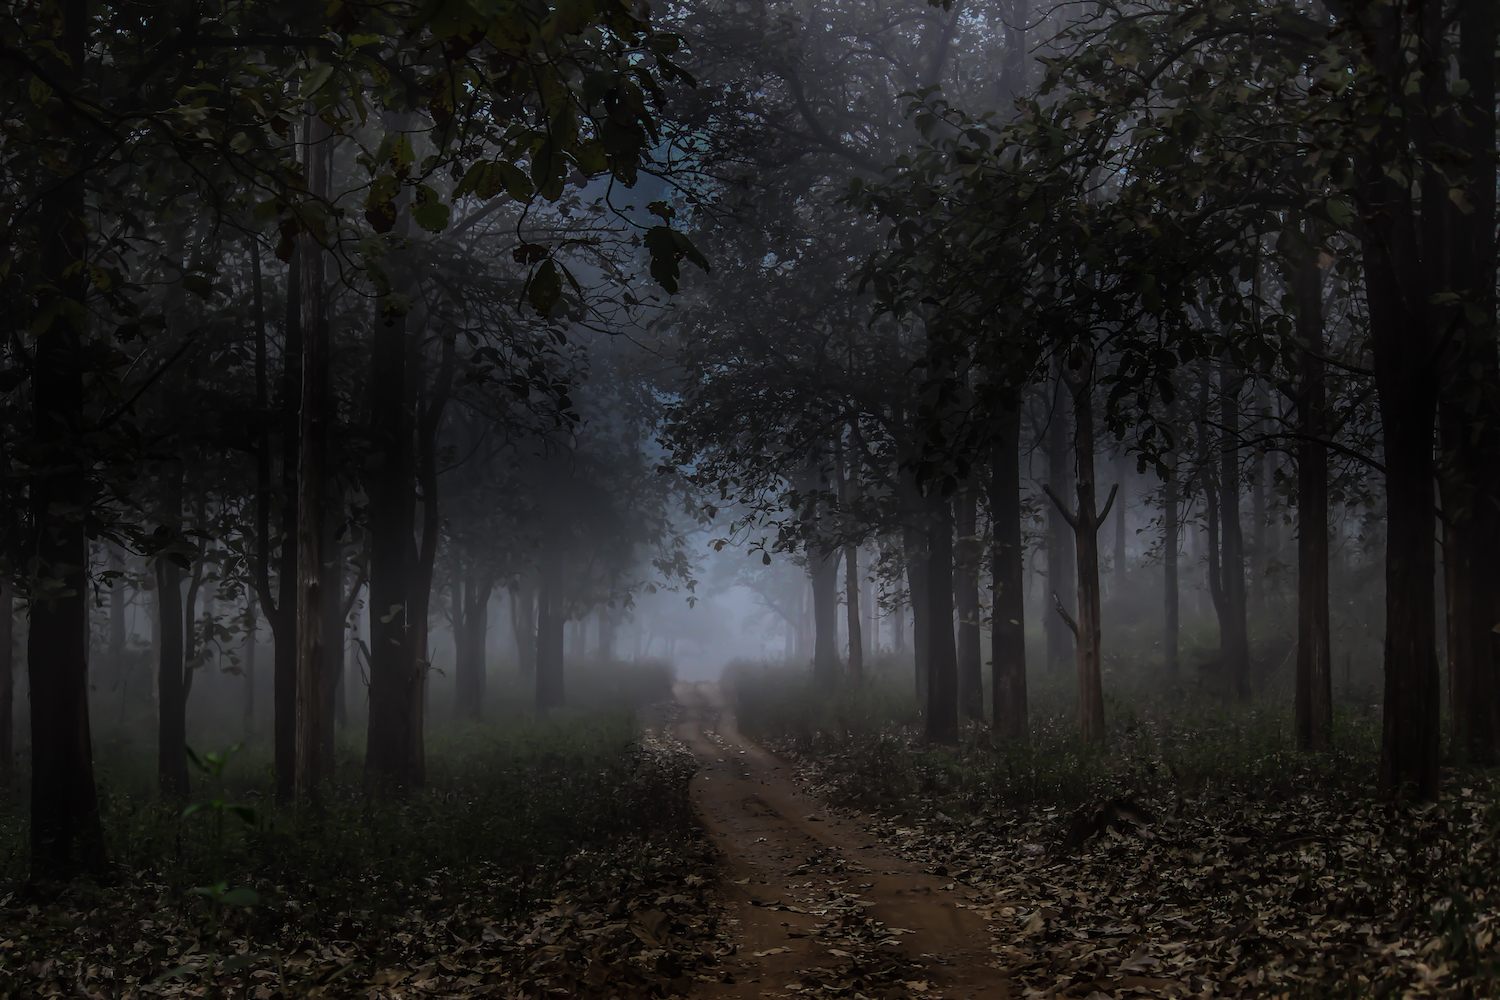 Every season brings its own charms to Nagarhole. A safari on a misty winter morning looks very different from a drive on a scorching summer afternoon, when the forest is bare and its residents emerge in search of water. 